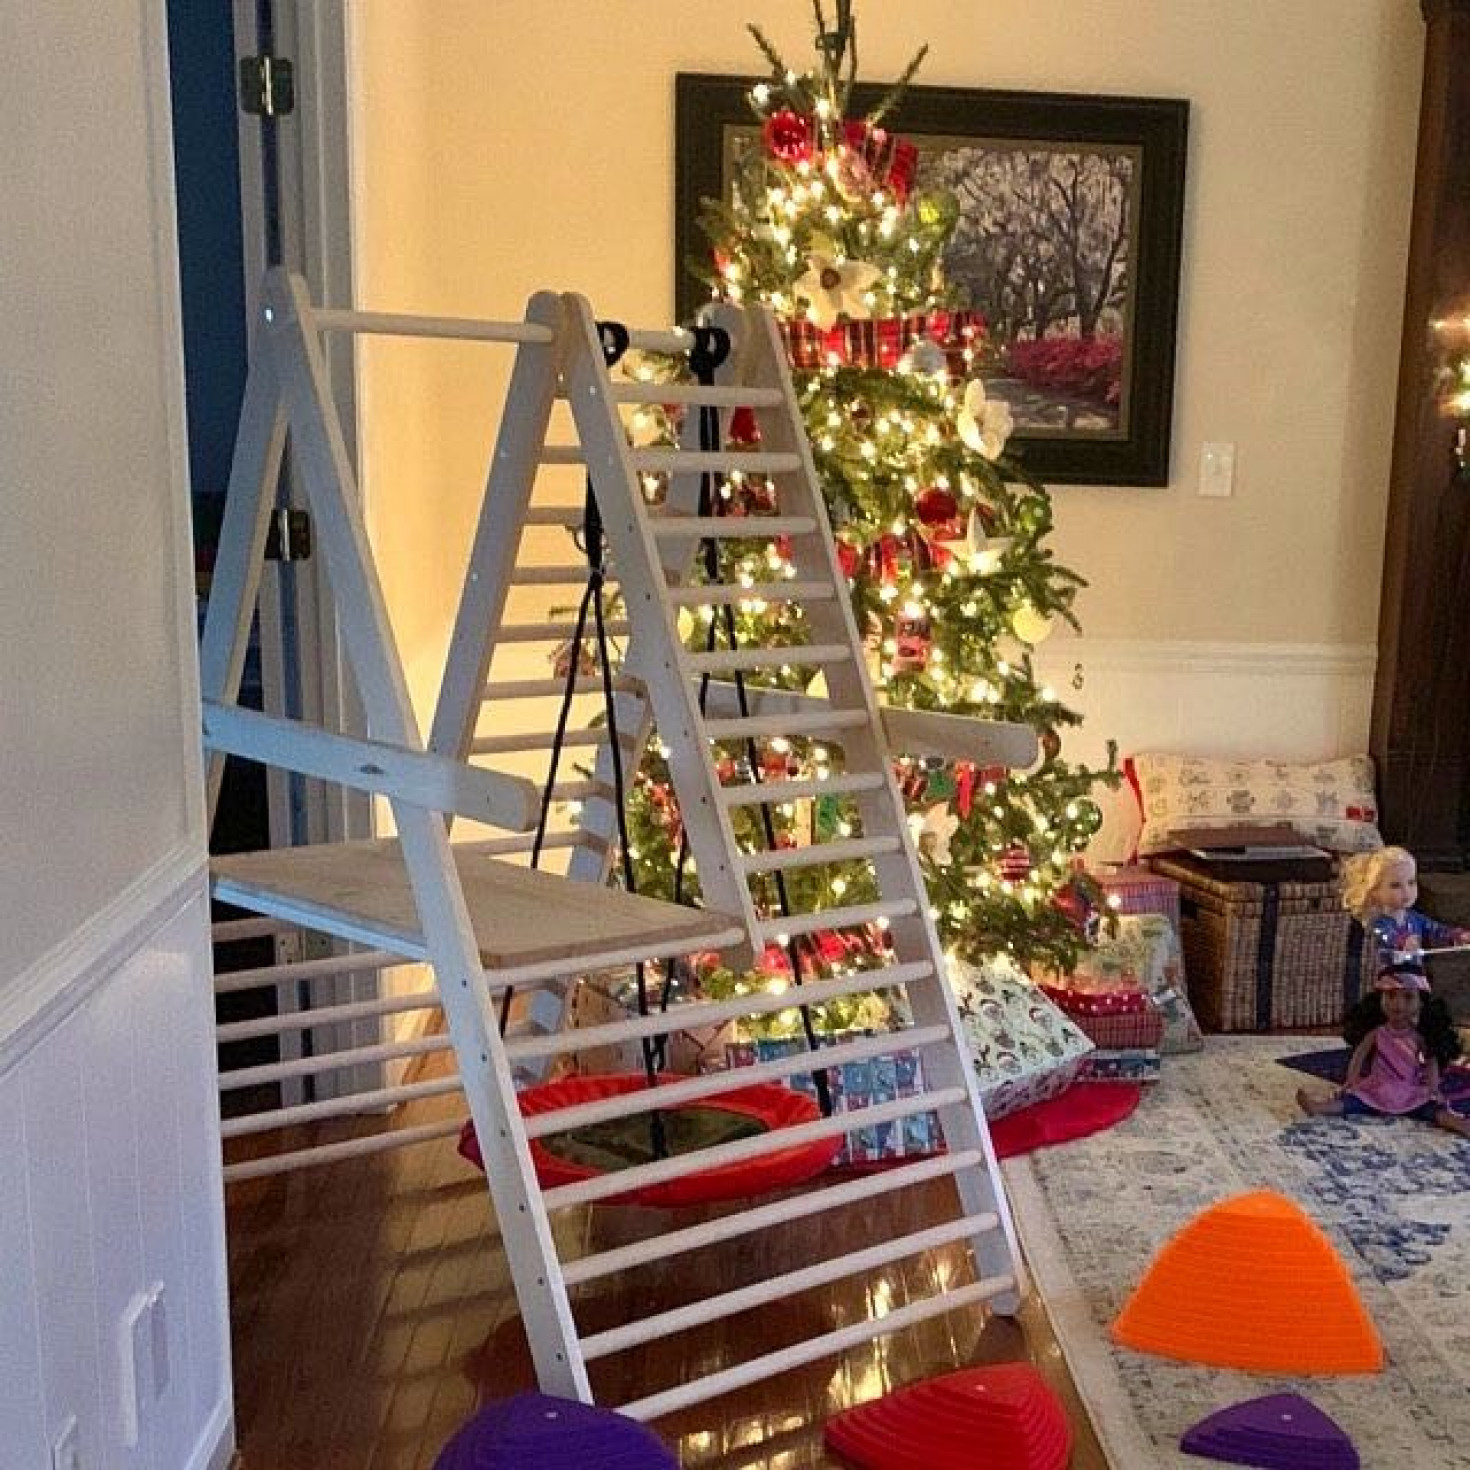 A climbing ladder for toddlers next to a Christmas tree